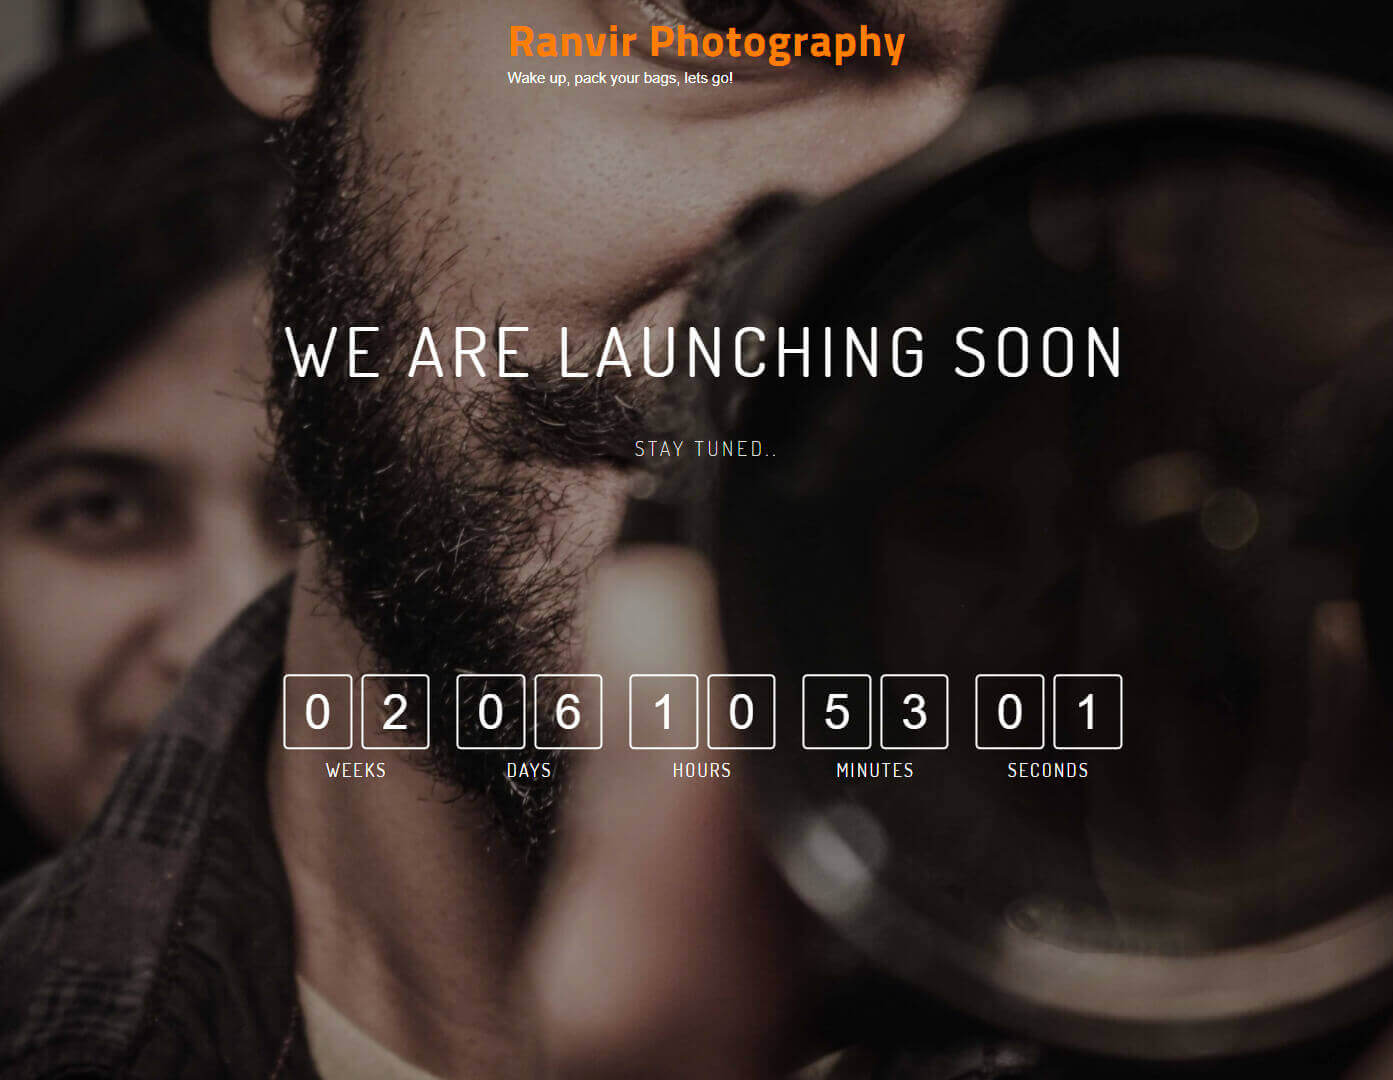 Ranvir Photography Display Image